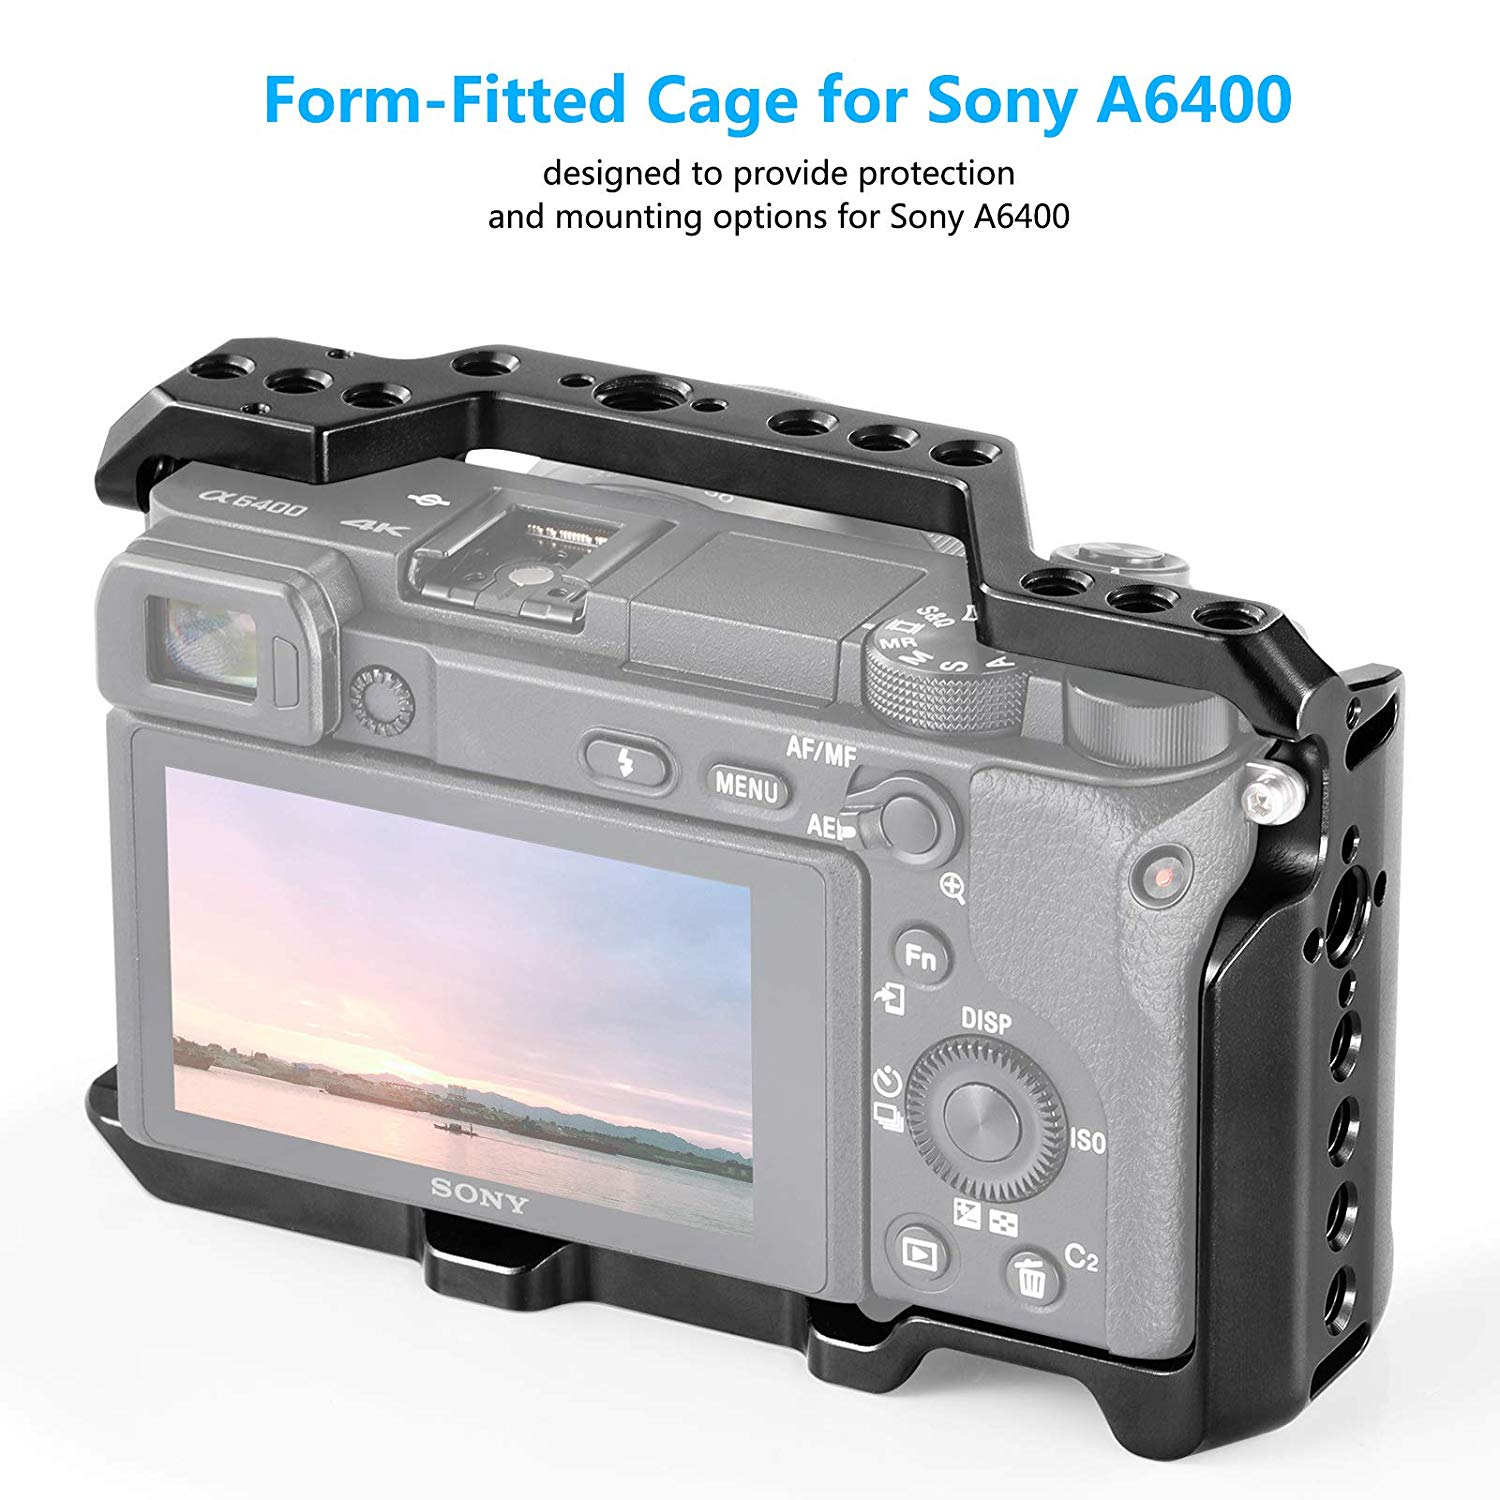 SmallRig Formfitting Cage for Sony Alpha a6300/a6400/a6500-CCS2310